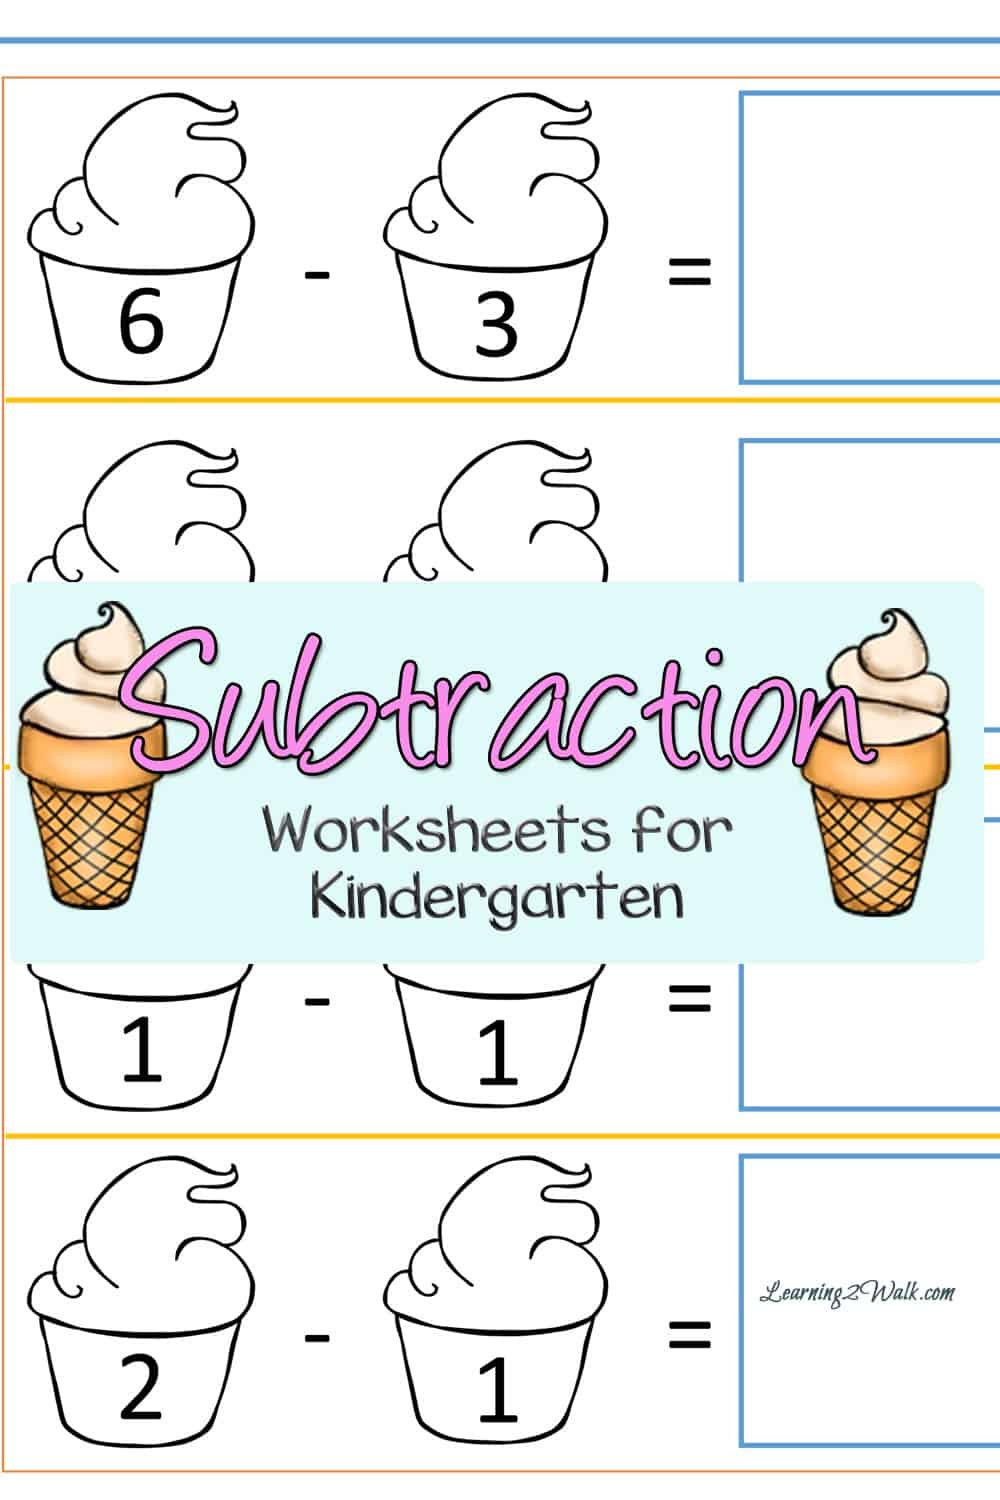 Kindergarten Subtraction Worksheets Free Printable Cut and Paste Ice Cream Kindergarten Subtraction Worksheets